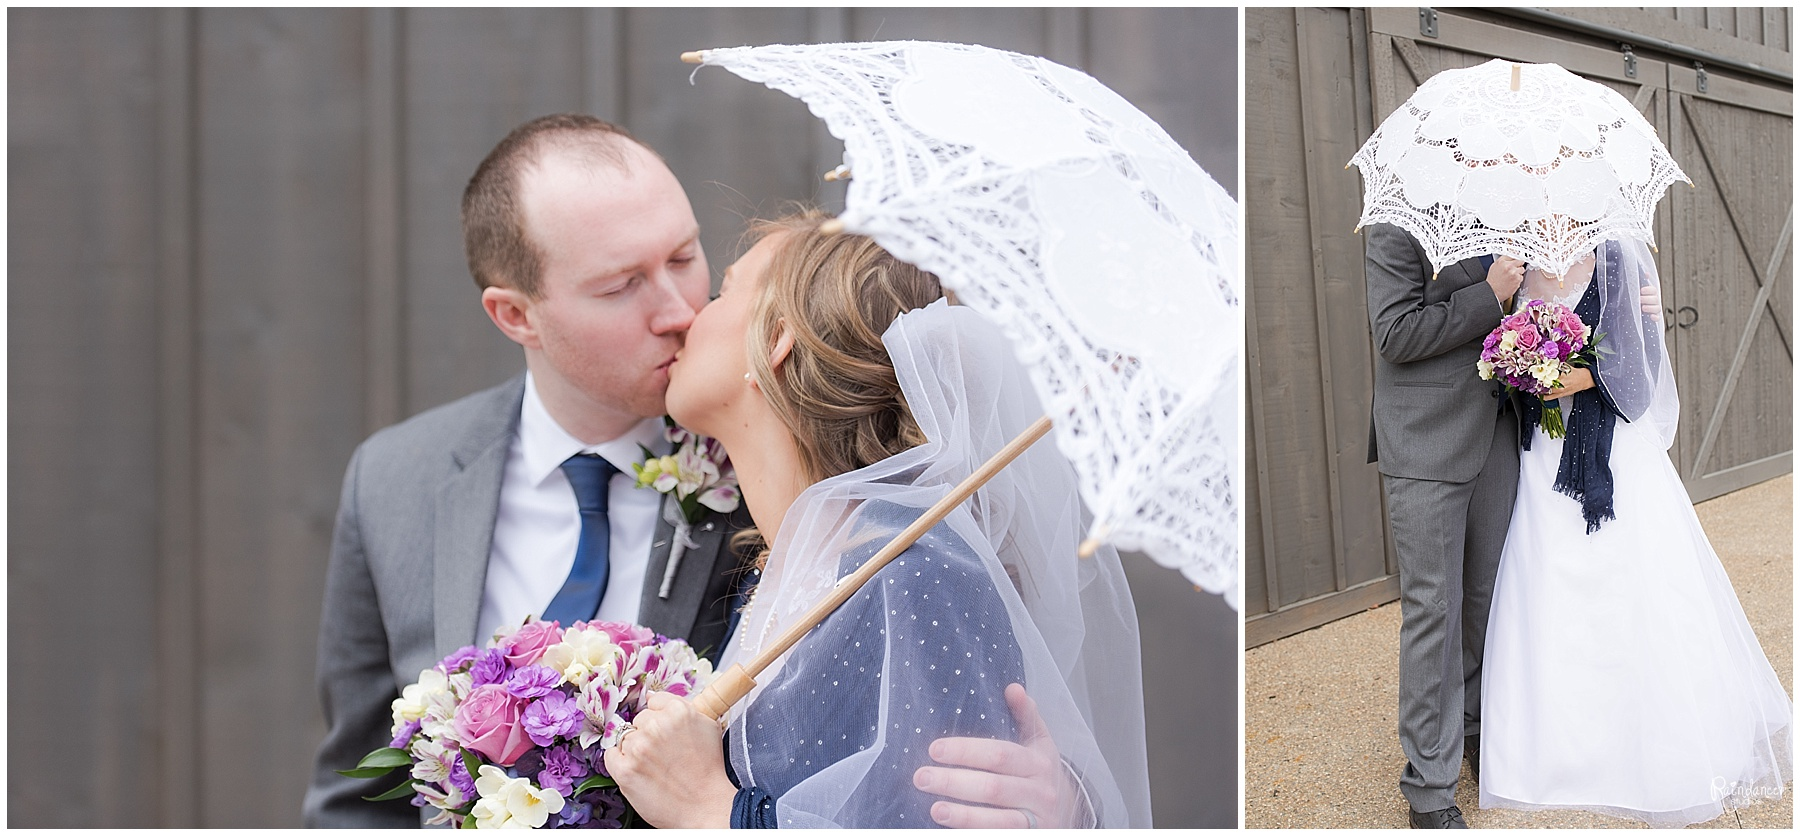 Bride and groom kissing under parasol umbrella with groom by Raindancer Studios Indianapolis Wedding Photographer Jill Howell